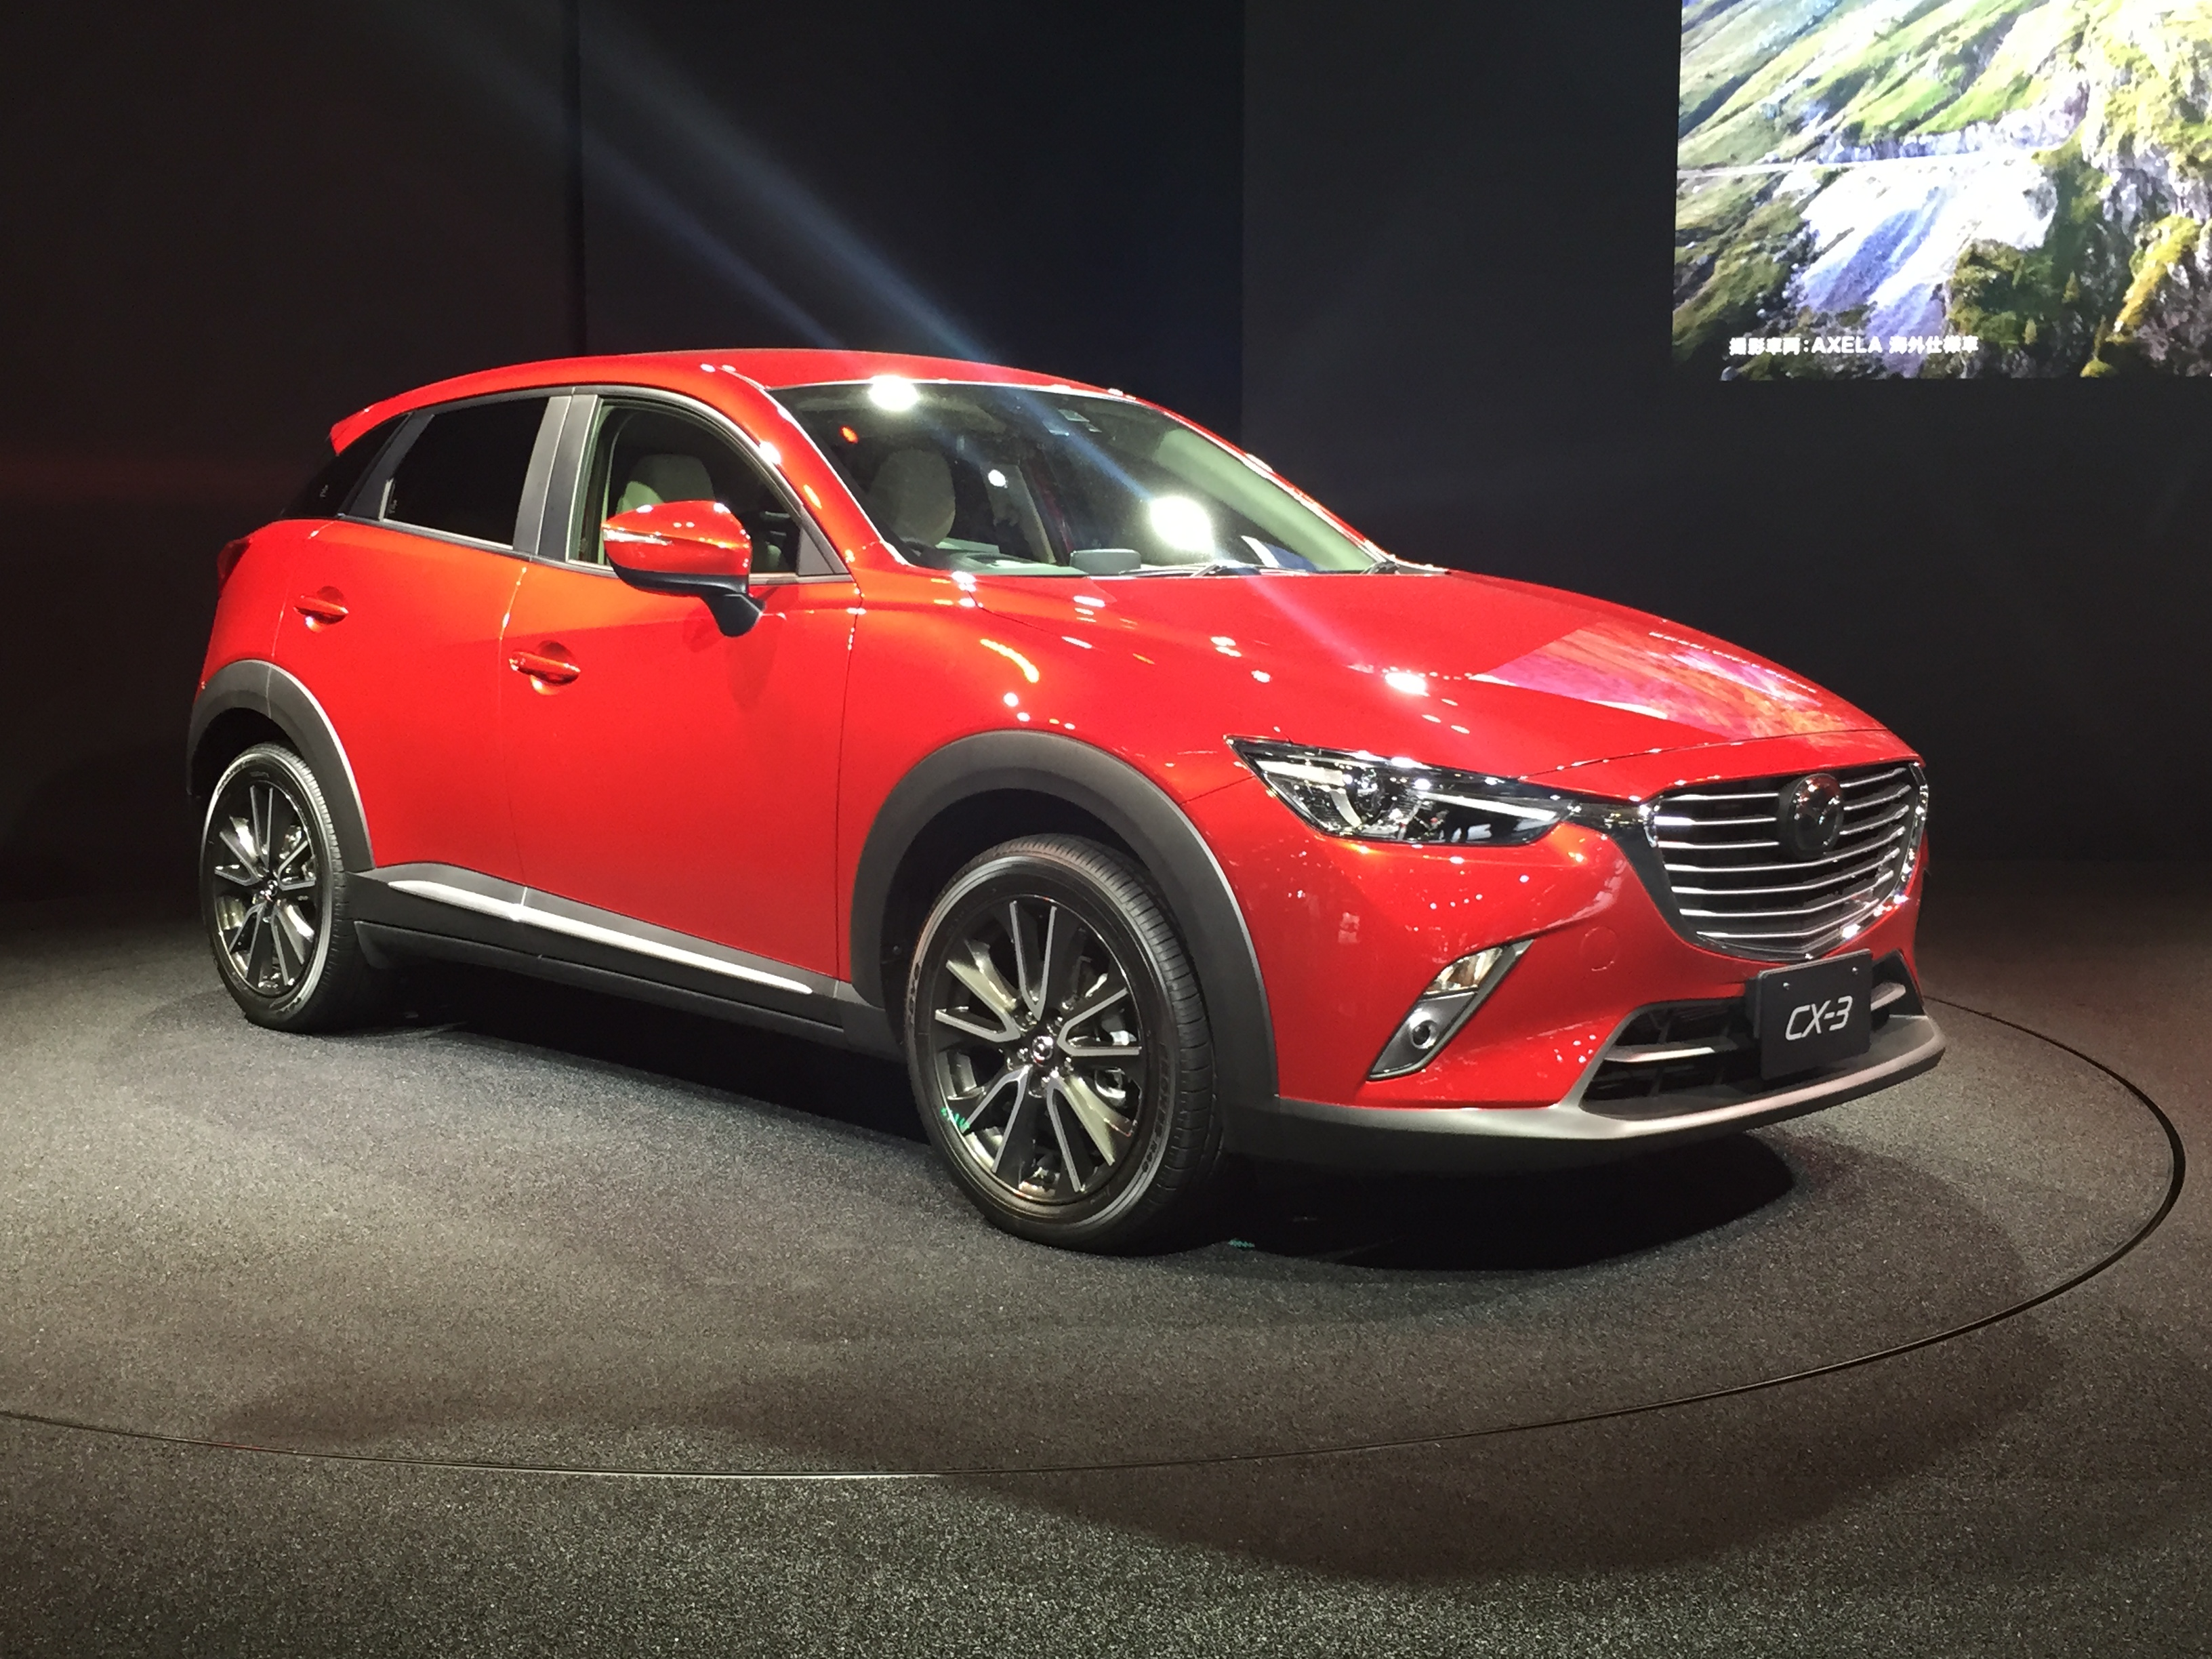 all new mazda cx 3 2015 compact crossover suv. Black Bedroom Furniture Sets. Home Design Ideas